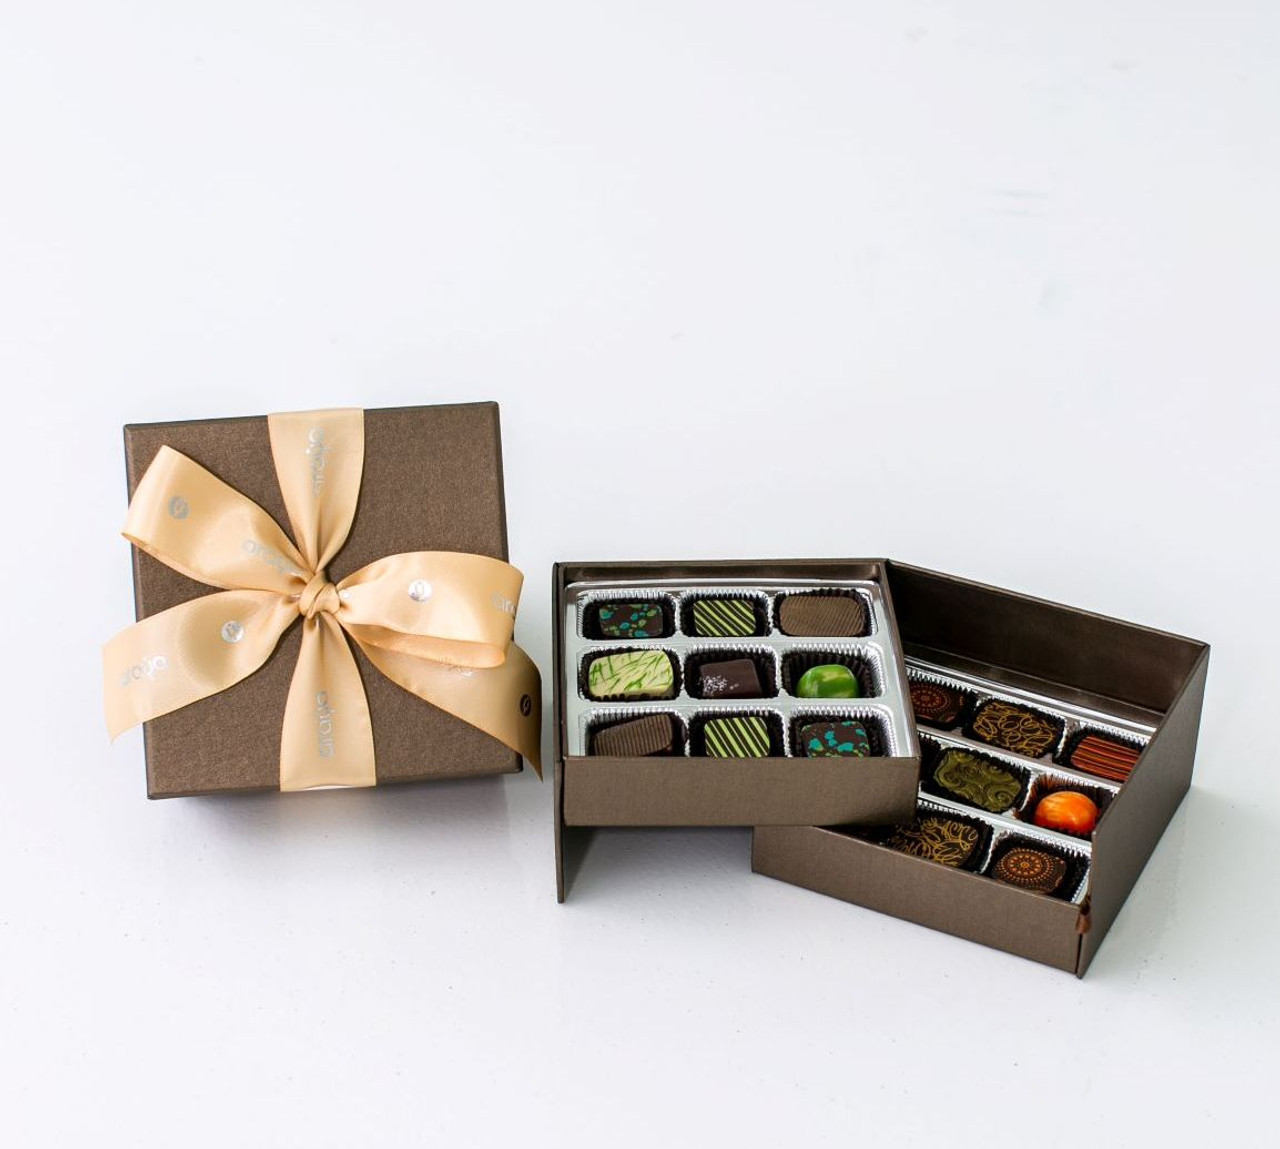 18 Chocolates Gift Box